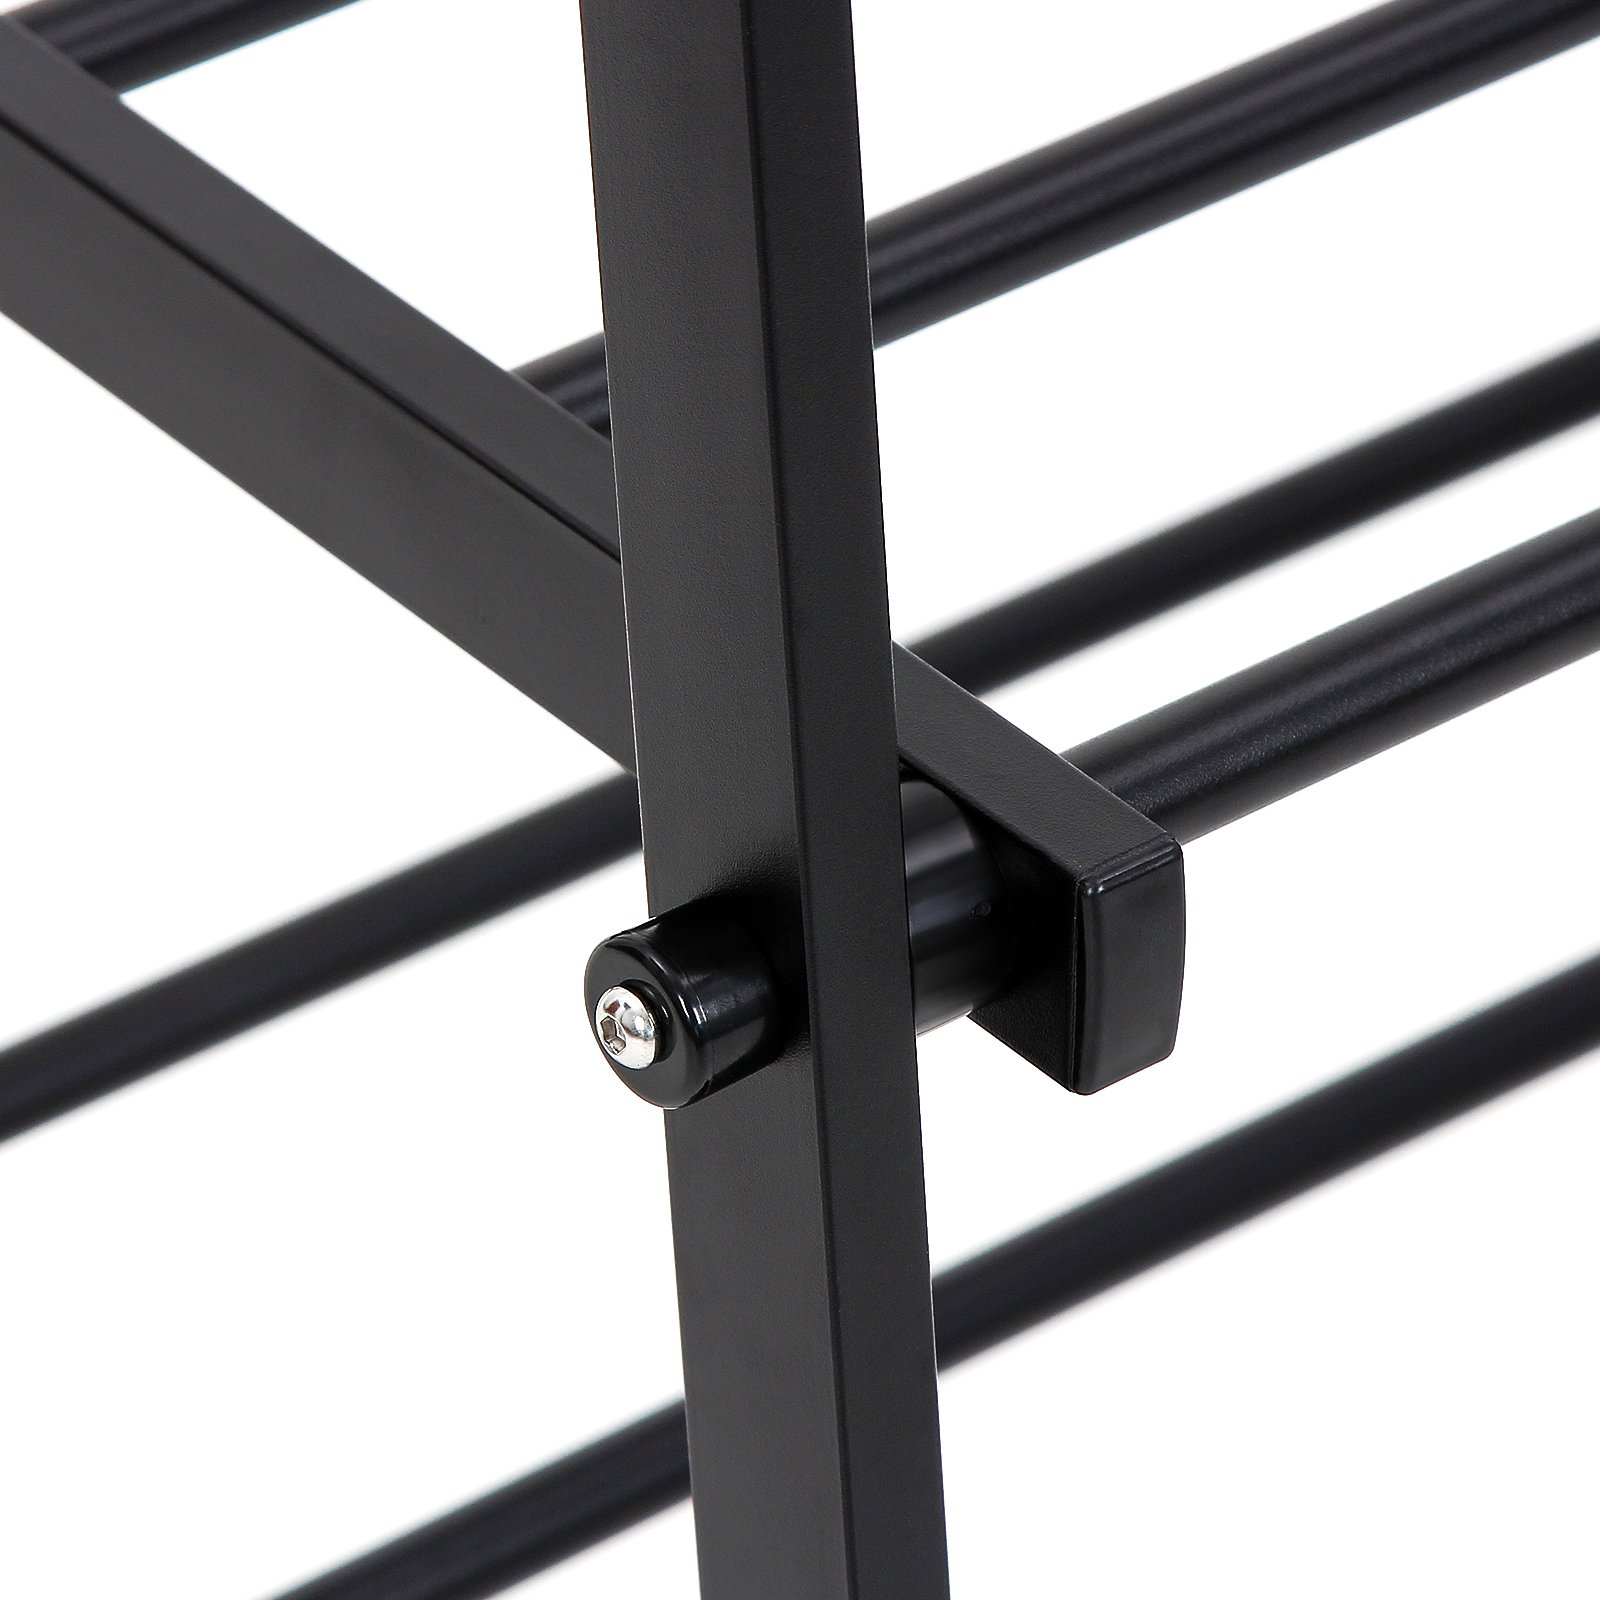 SONGMICS Clothing Garment Rack with 2-Tire Shelf for Shoes Clothes Storage Black URCR22B by SONGMICS (Image #6)